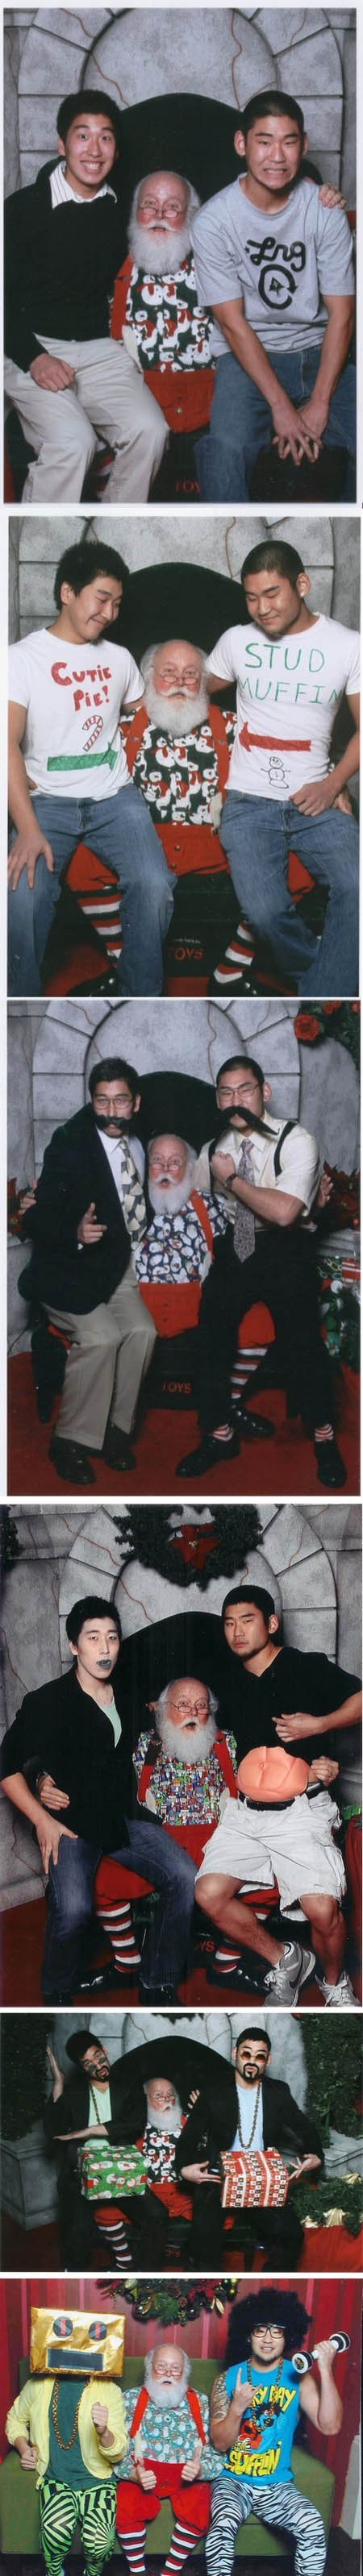 Santa Photos WIN